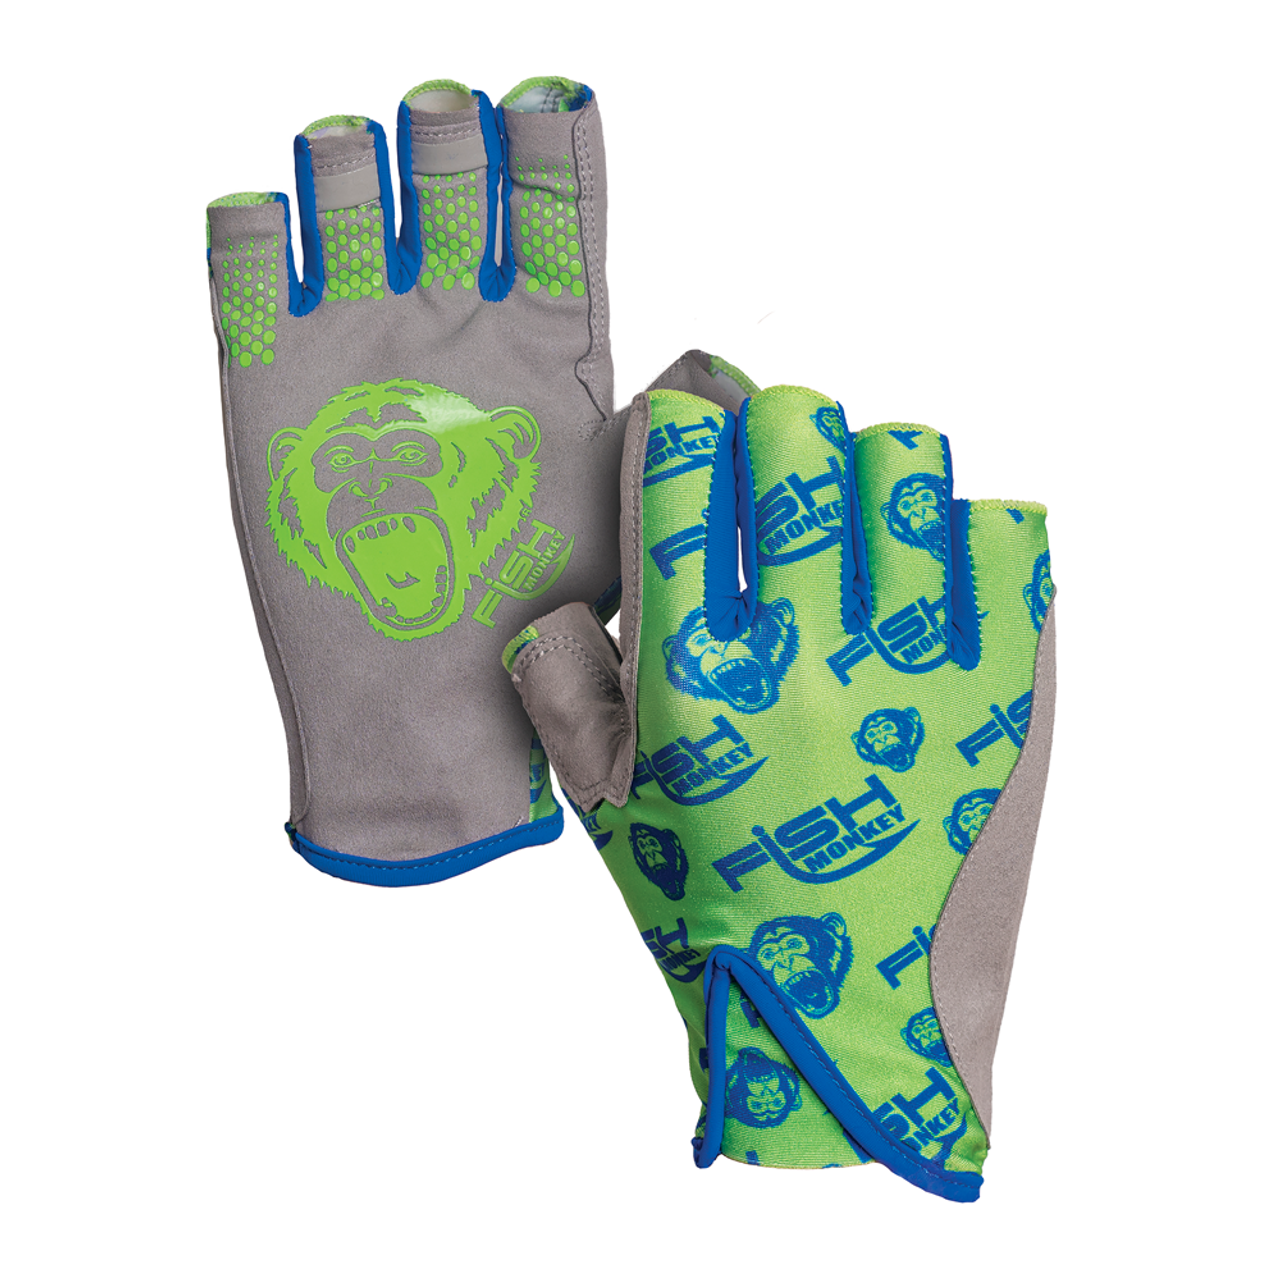 Fish Monkey Pro 365 Guide Glove FM21-NEONGREEN CHOOSE YOUR SIZE!